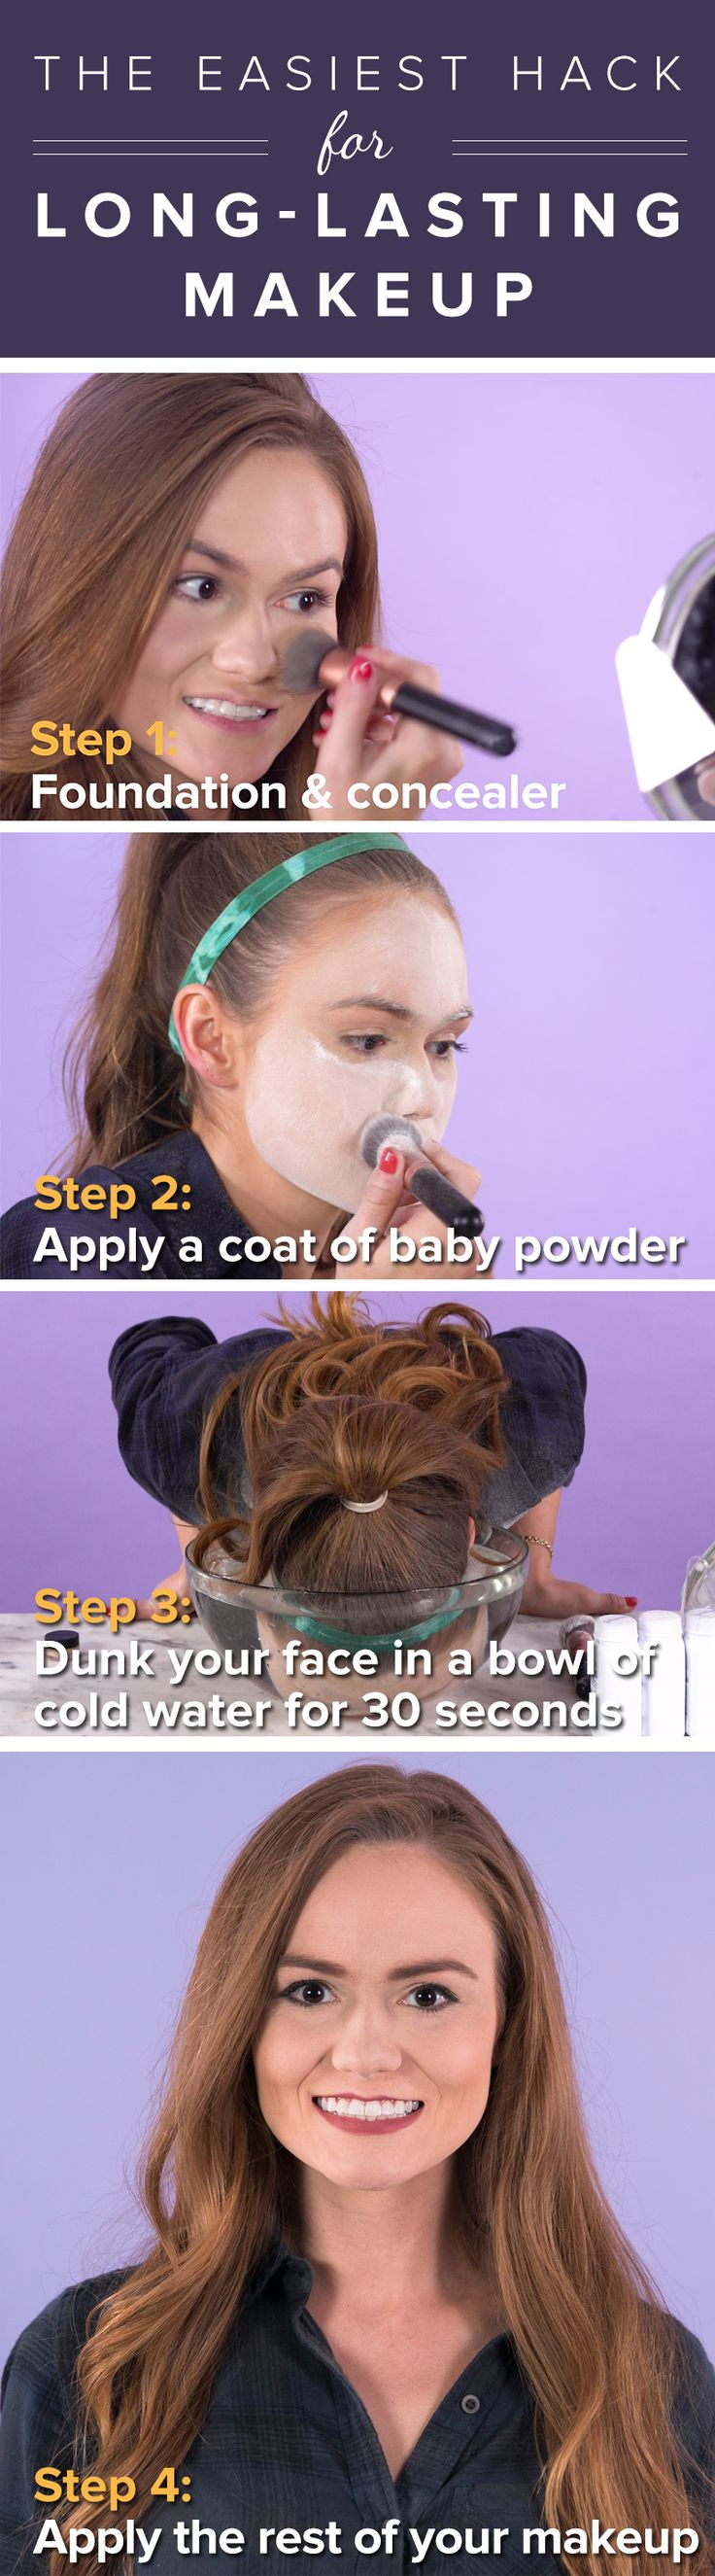 Here's how to get long-lasting makeup and foundation. Try this hack and tips to have it last all day.